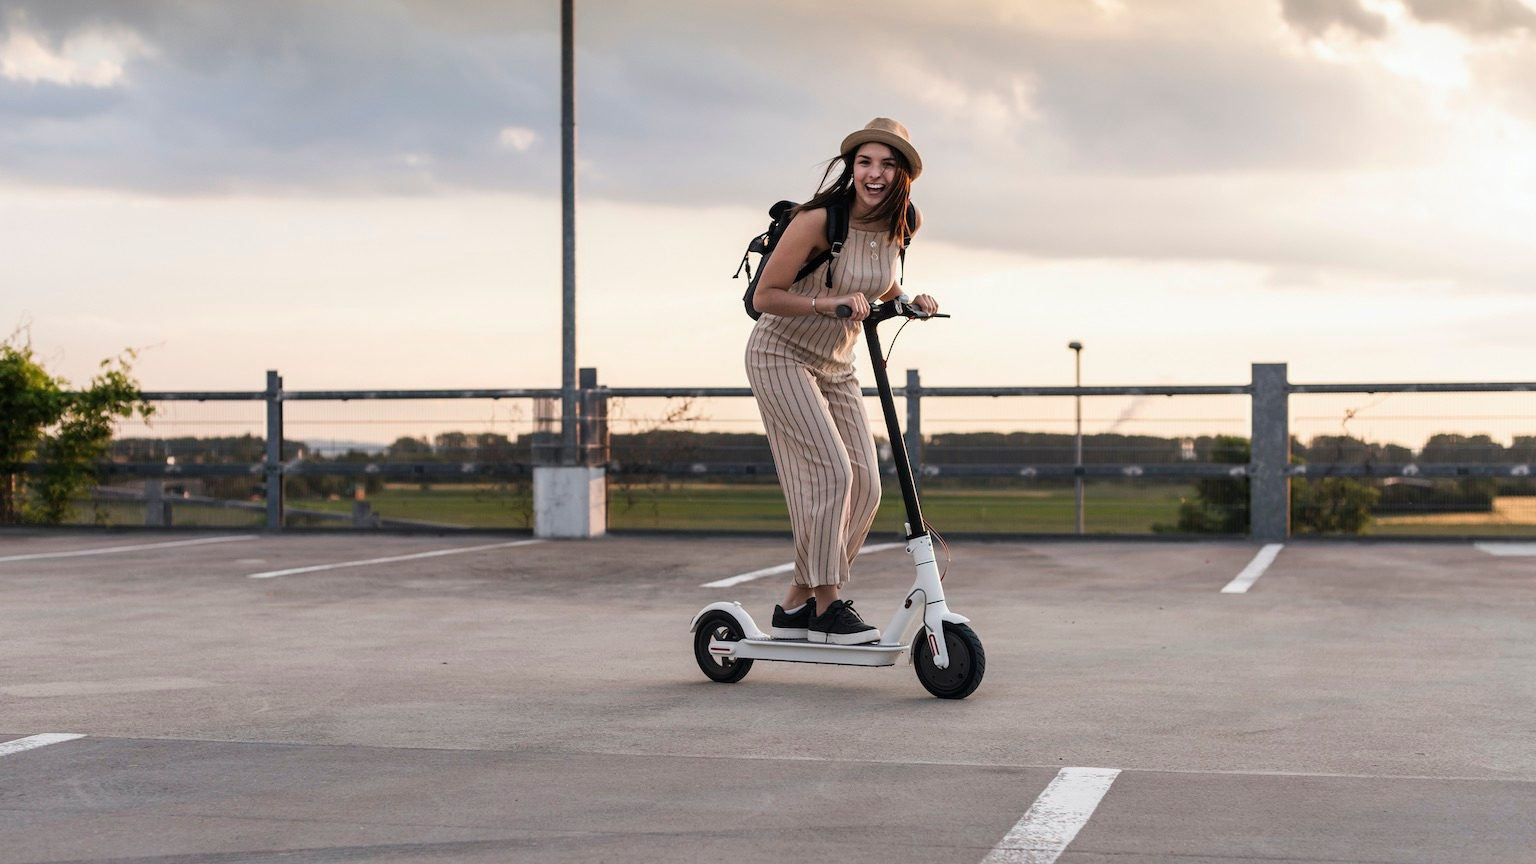 Happy young woman on electric scooter on parking deck